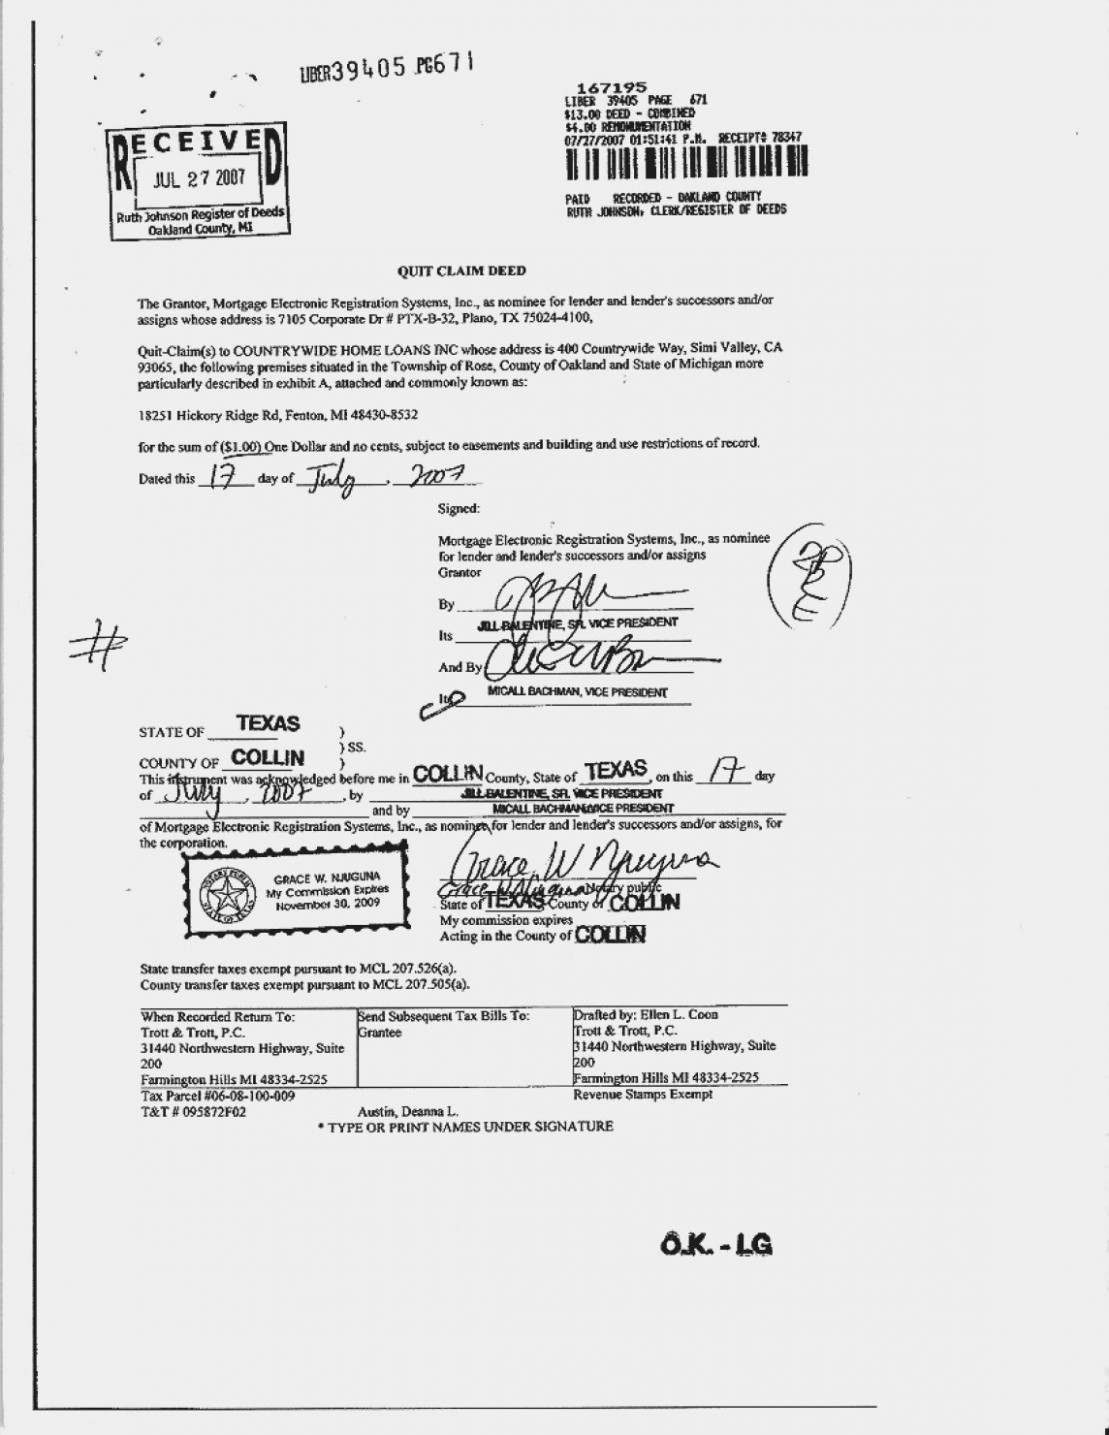 Wayne County Register Of Deeds Quit Claim Deed Form